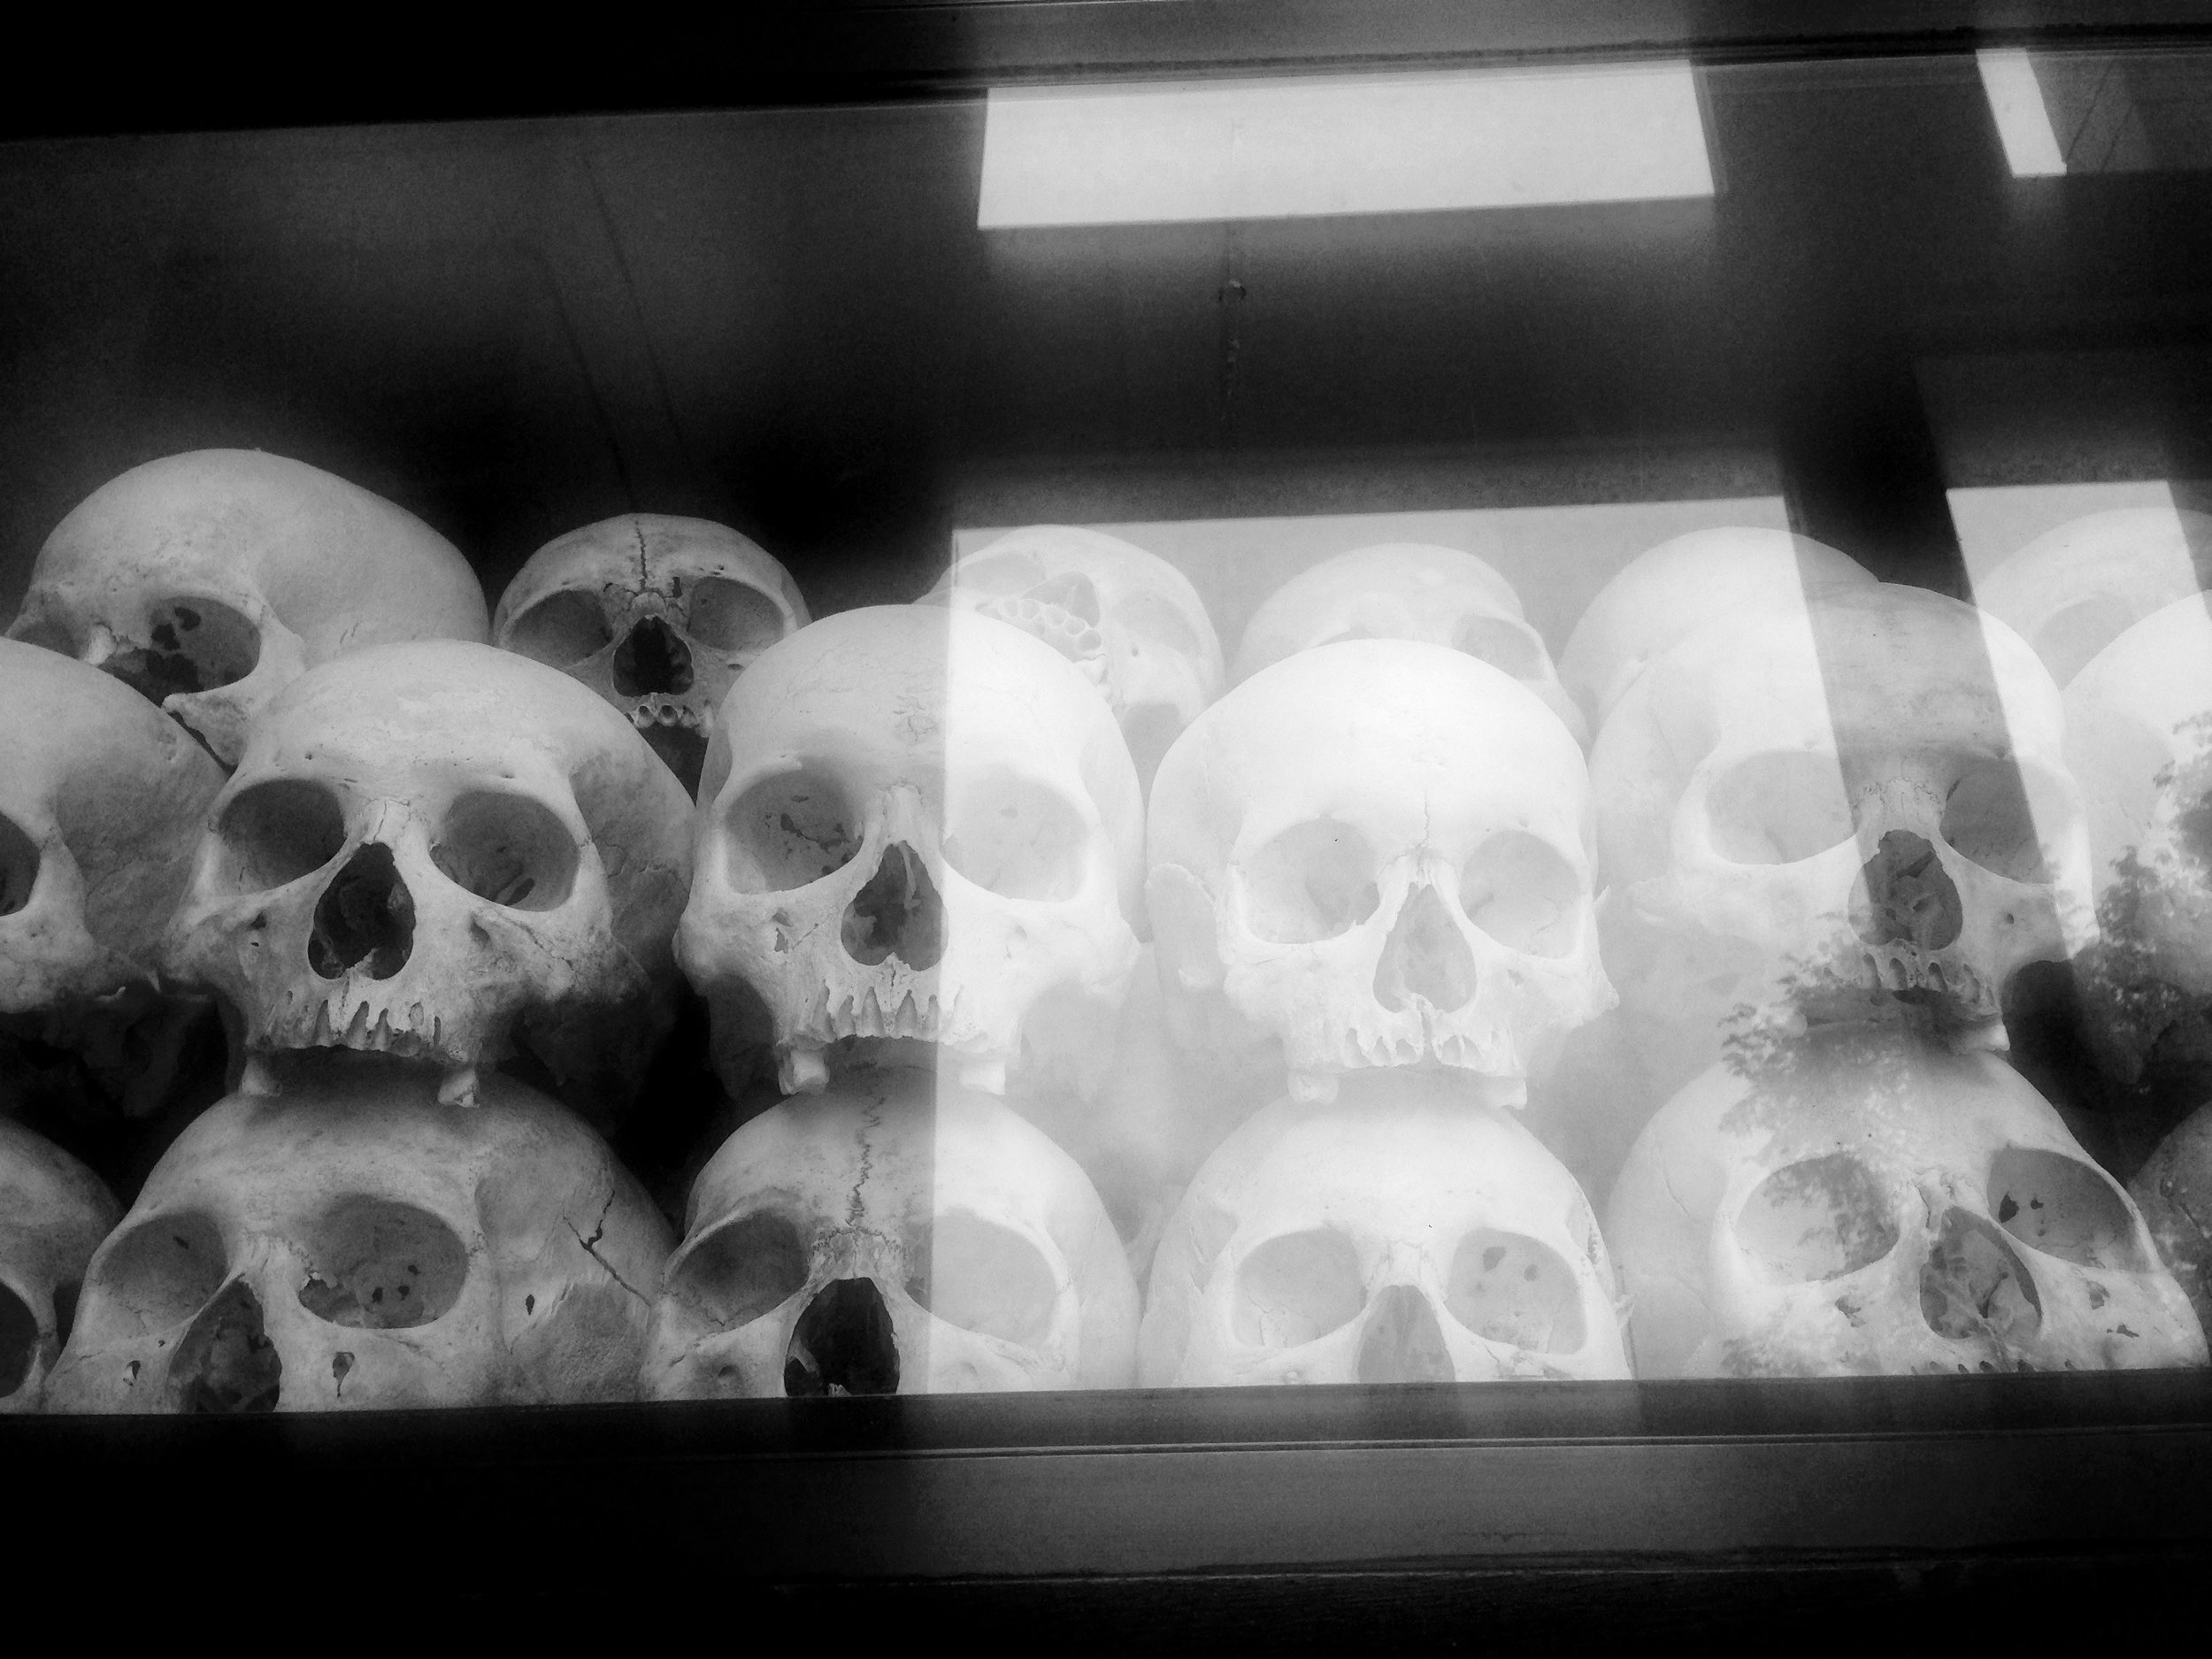 Skull remains that have been preserved at Cambodia's largest Killing Fields. They have been categorized by gender, age, and method of murder. Imagine looking up to eleven stories of skulls, bones and preserved weapons, painting a picture of what unimaginable horror looked like nearly 40 years ago.